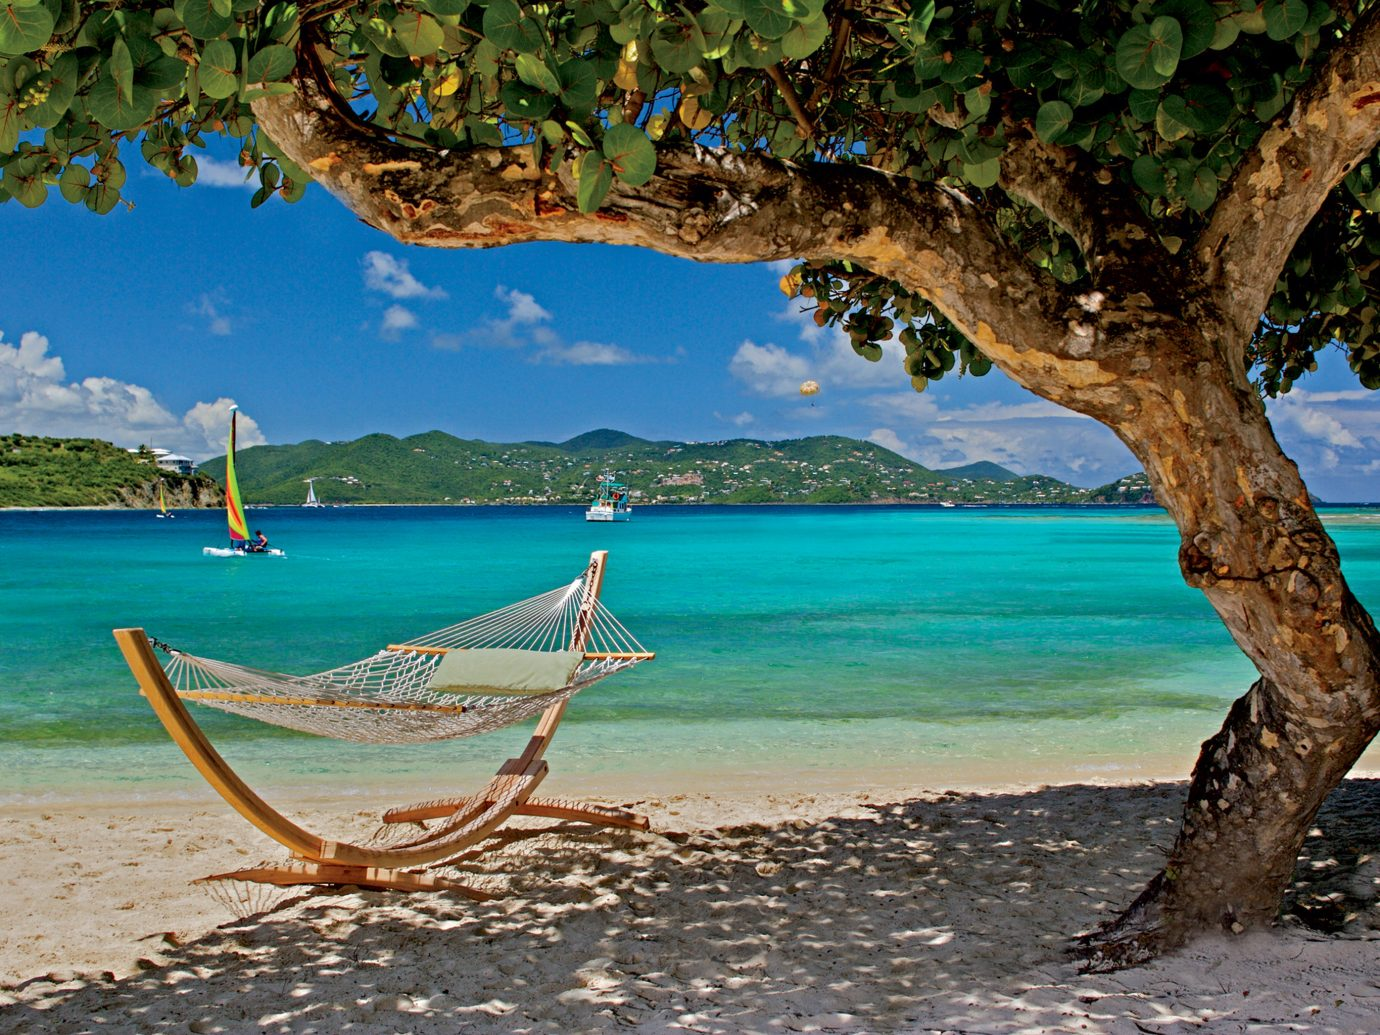 Beach Hotels Romance Rustic Tropical water outdoor shore tree body of water Sea Nature vacation Ocean tropics Coast bay Island caribbean Lagoon arecales